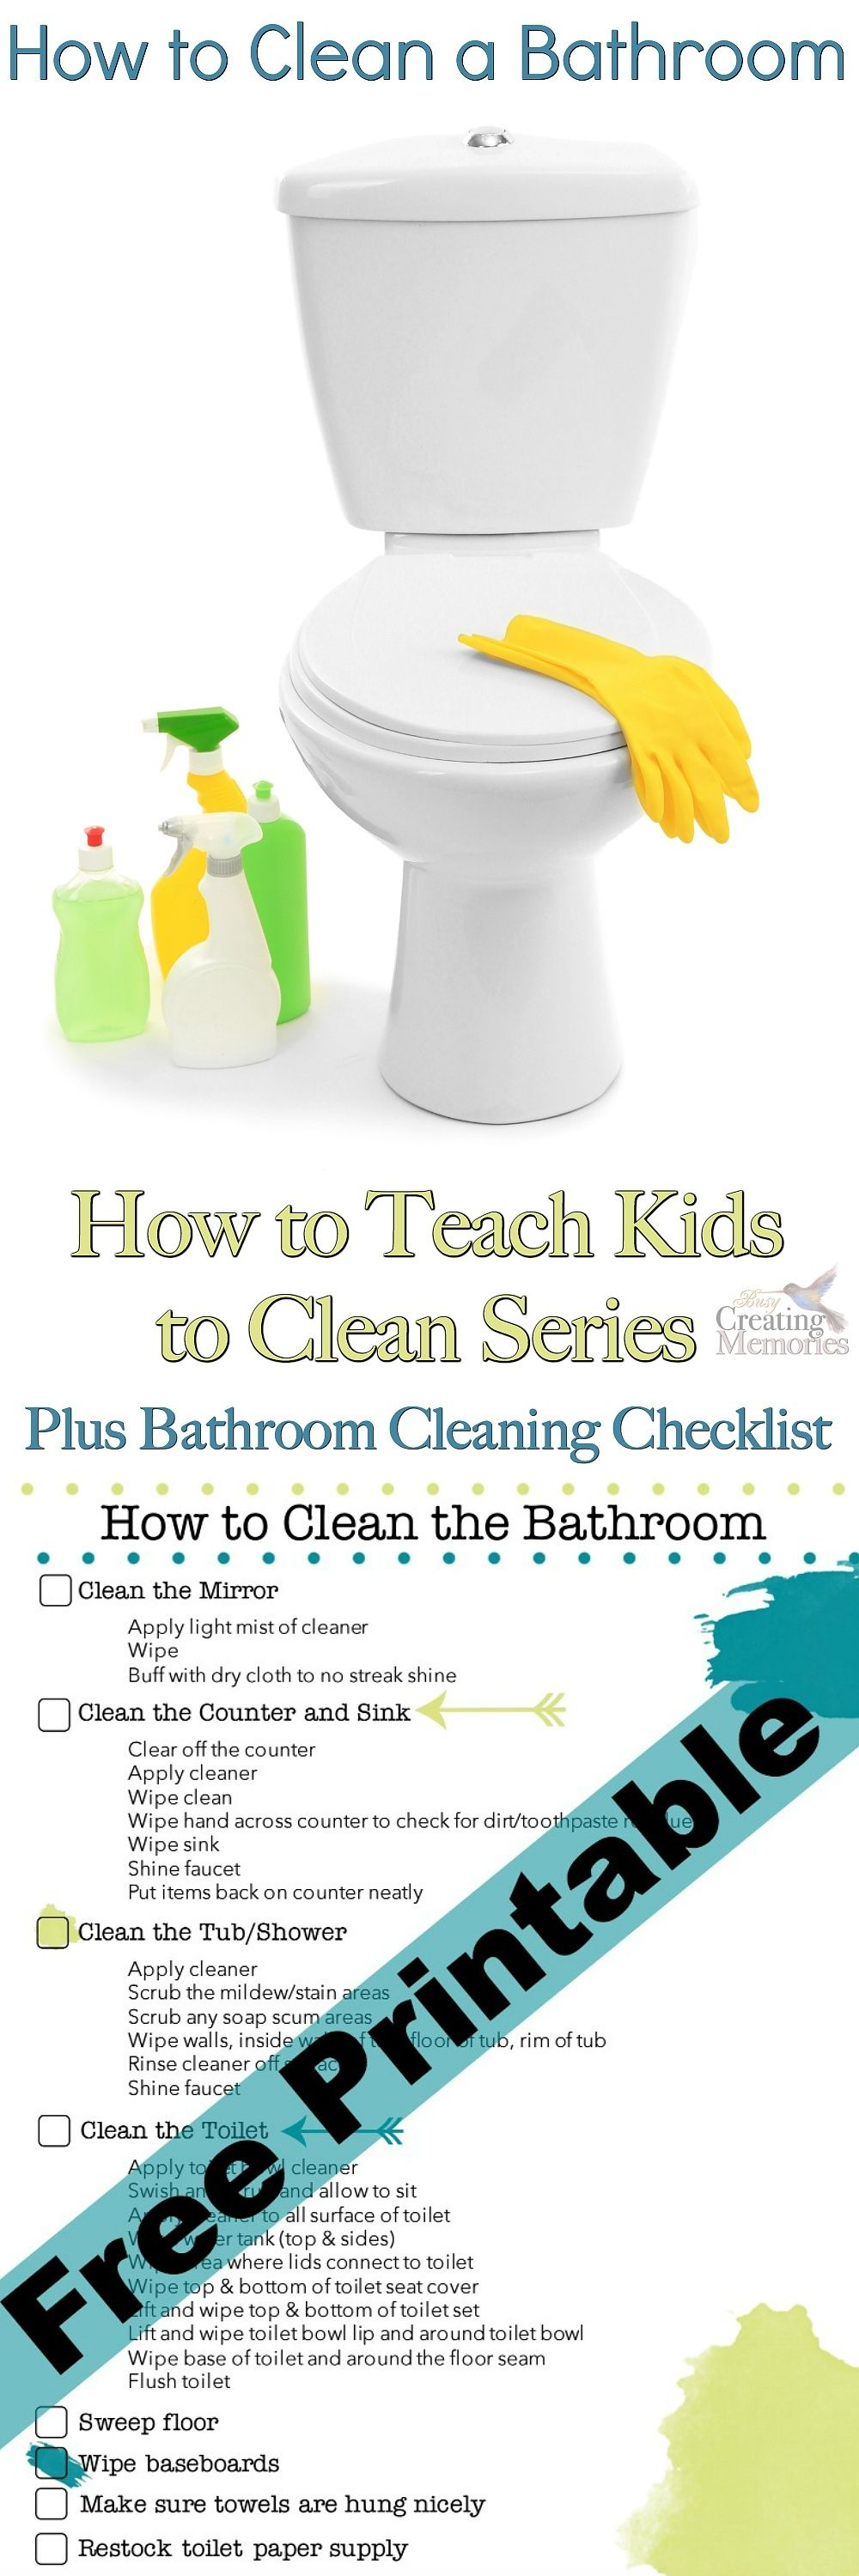 Kids can clean the bathrooms - Man Do My Kids Need This Don T Live With A Half Clean Bathroom Again Use This Bathroom Cleaning Checklist To Help Teach Your Kids How To Clean A Bathroom